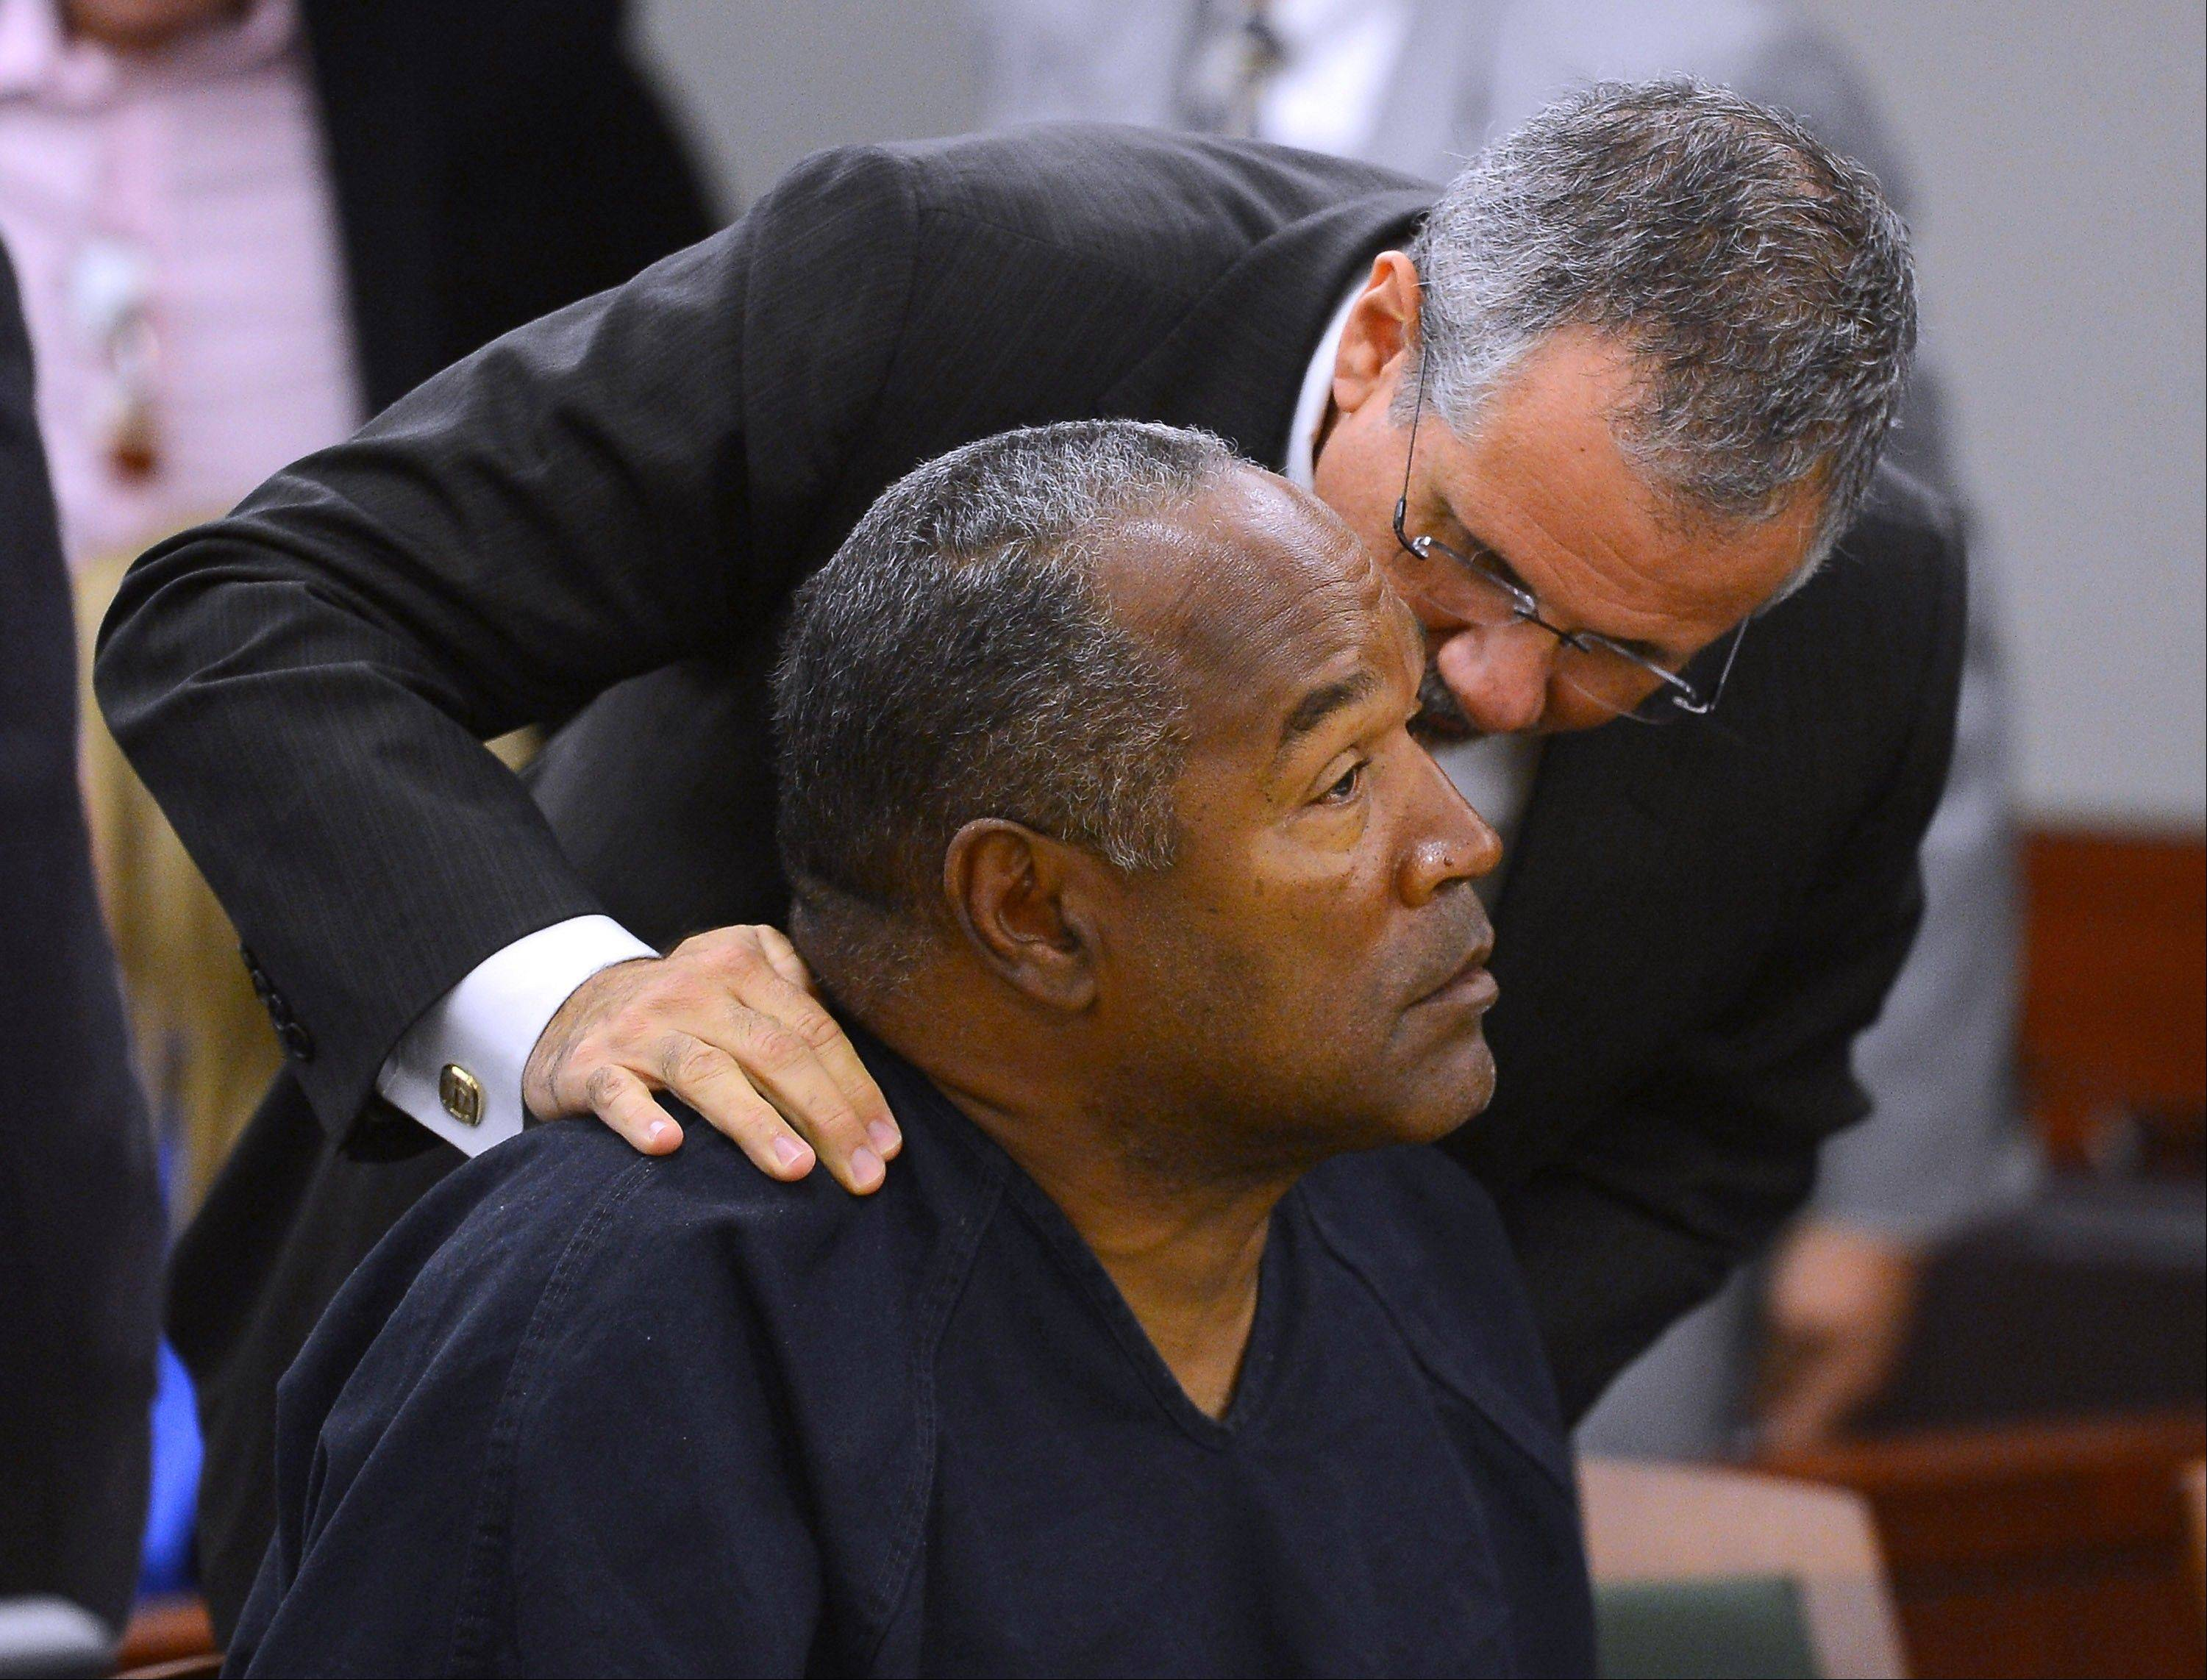 O.J. Simpson and his defense attorney Ozzie Fumo confer in a Las Vegas court May 17. Simpson seeks a new trial, claiming he had such bad representation that his conviction should be reversed.